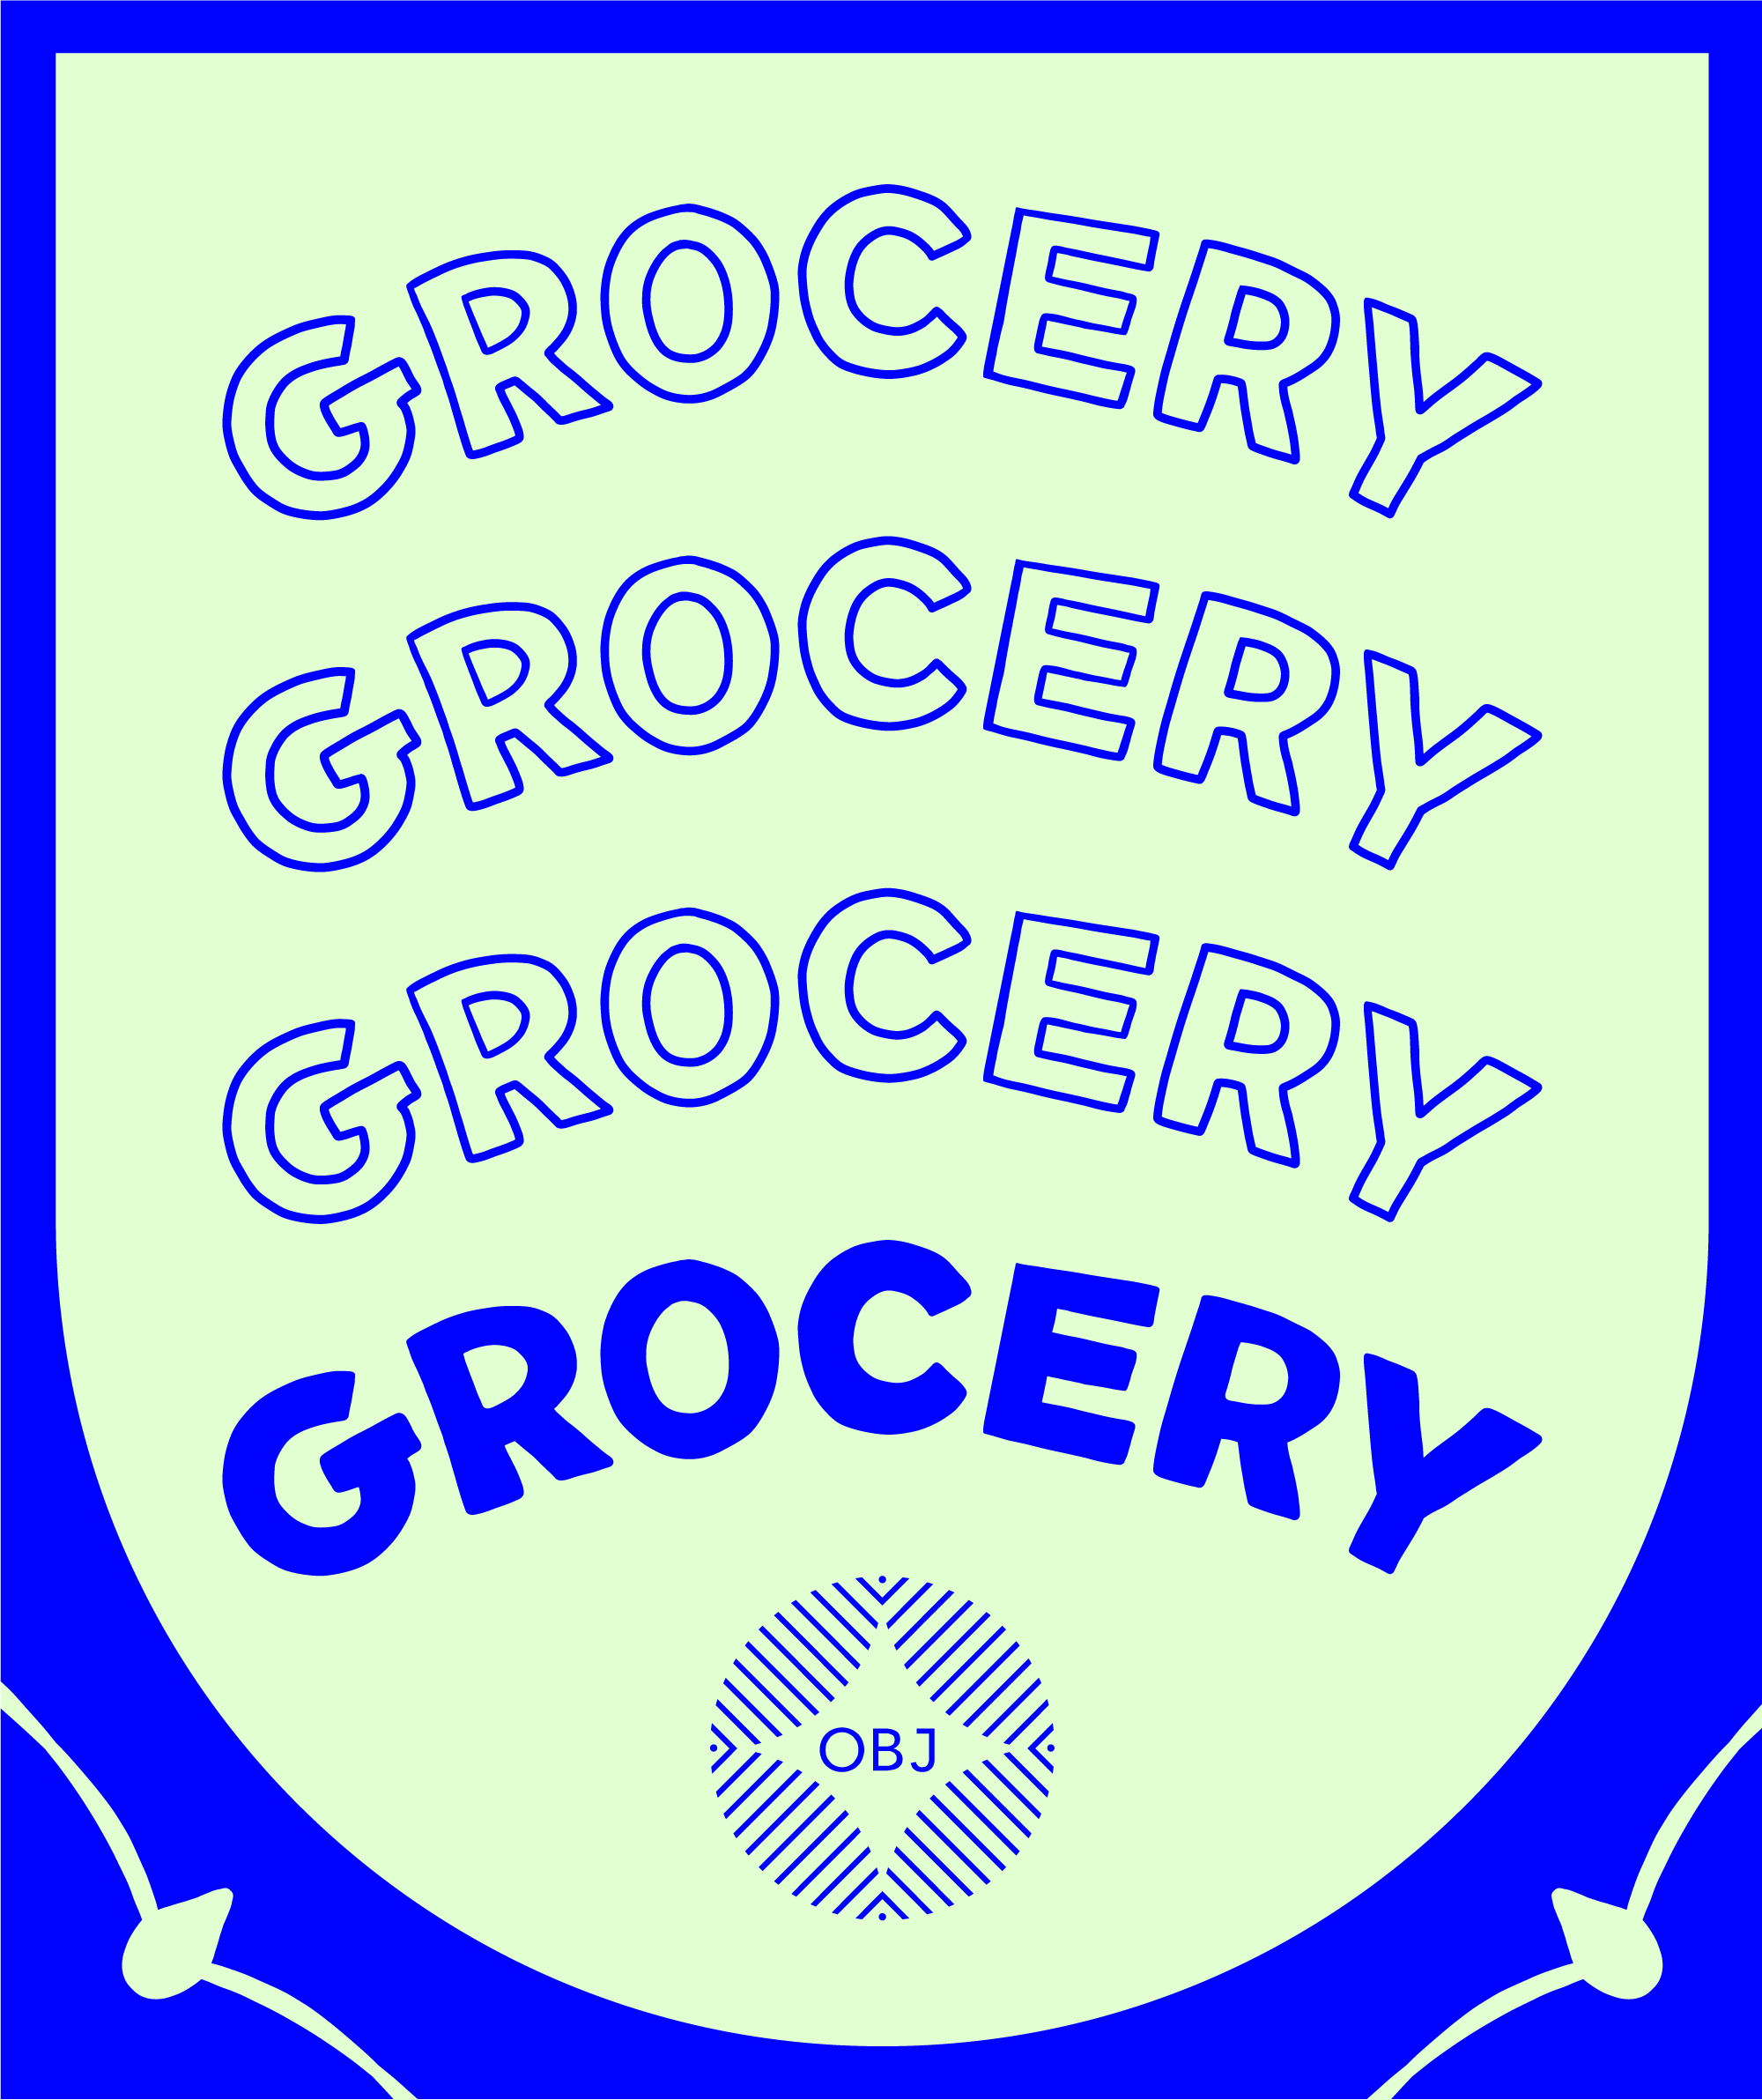 THE-GROCERY_blue.png